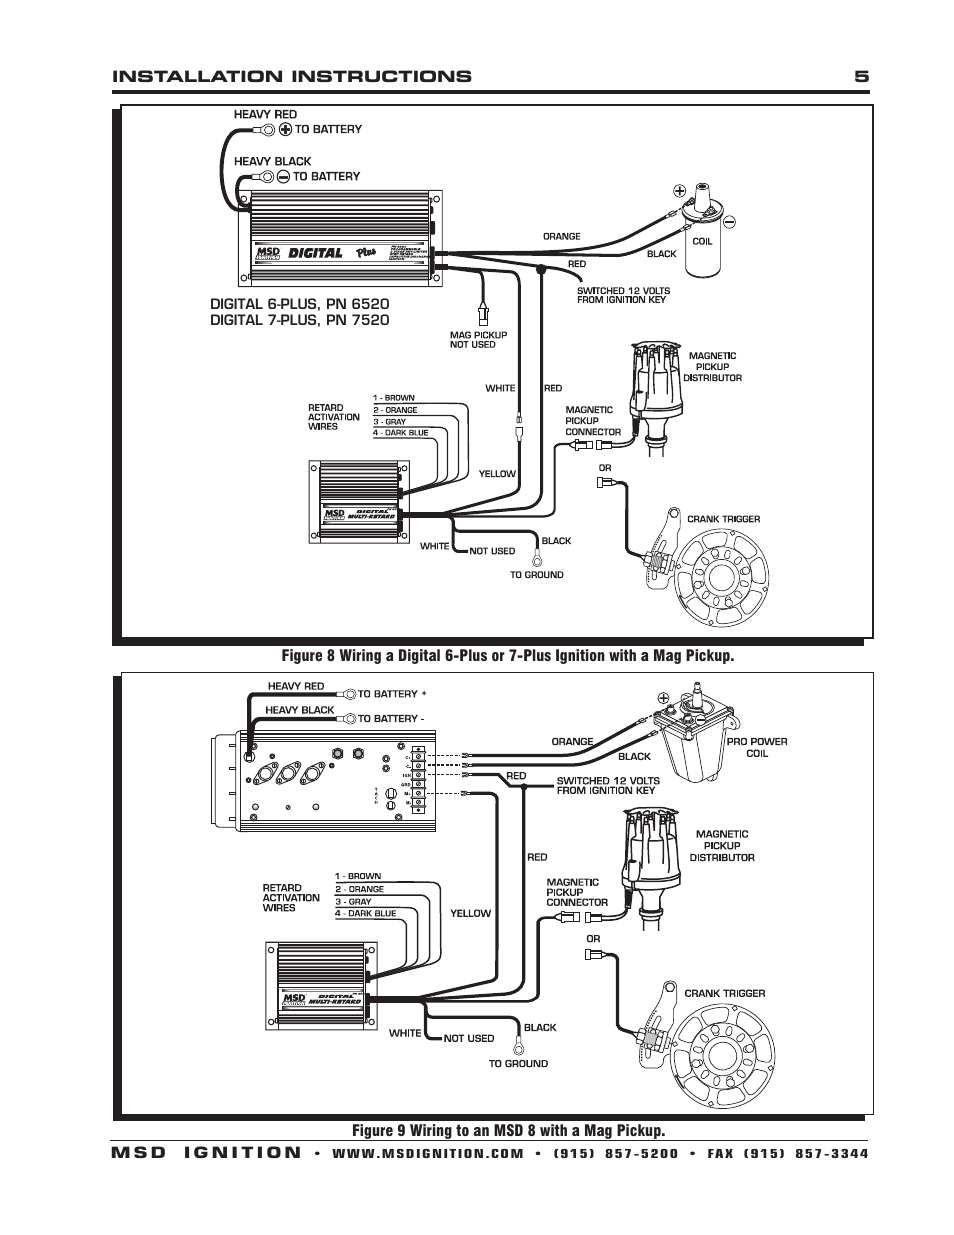 msd 5 wiring diagram msd 8975 digital multi-retard installation user manual ... msd 6520 wiring diagram #12